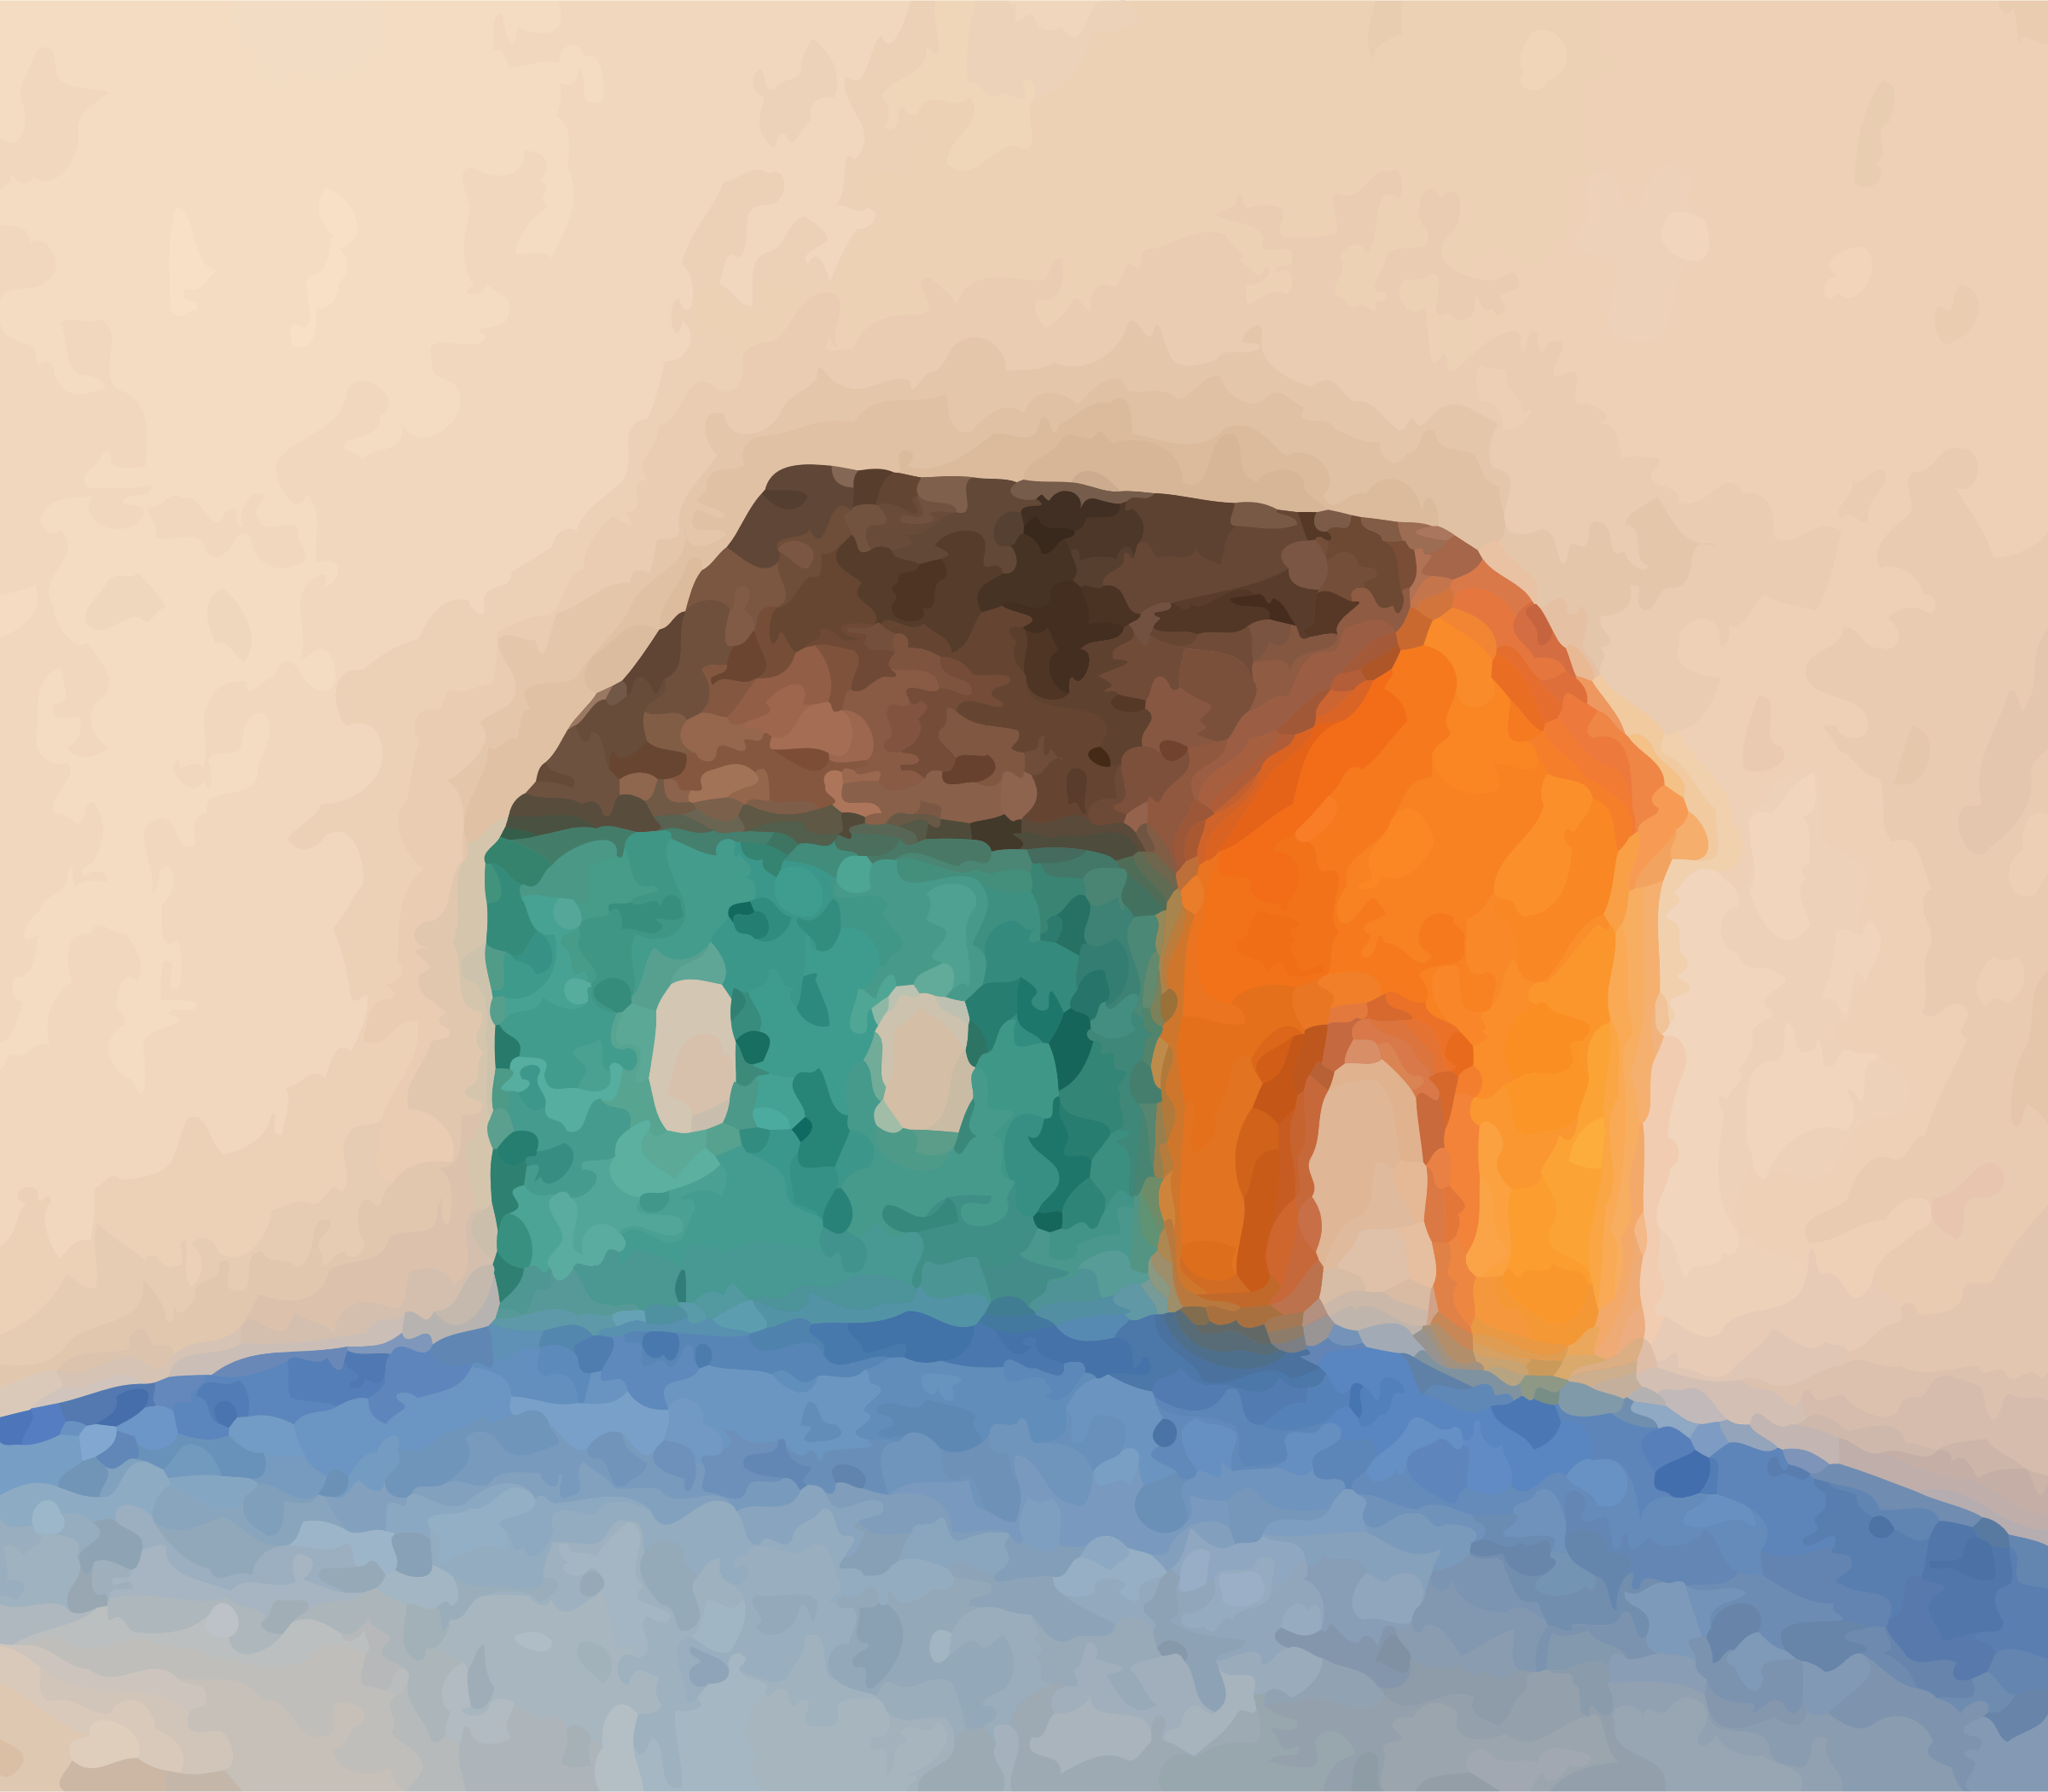 Small home righted (oil painting look) by Firkin